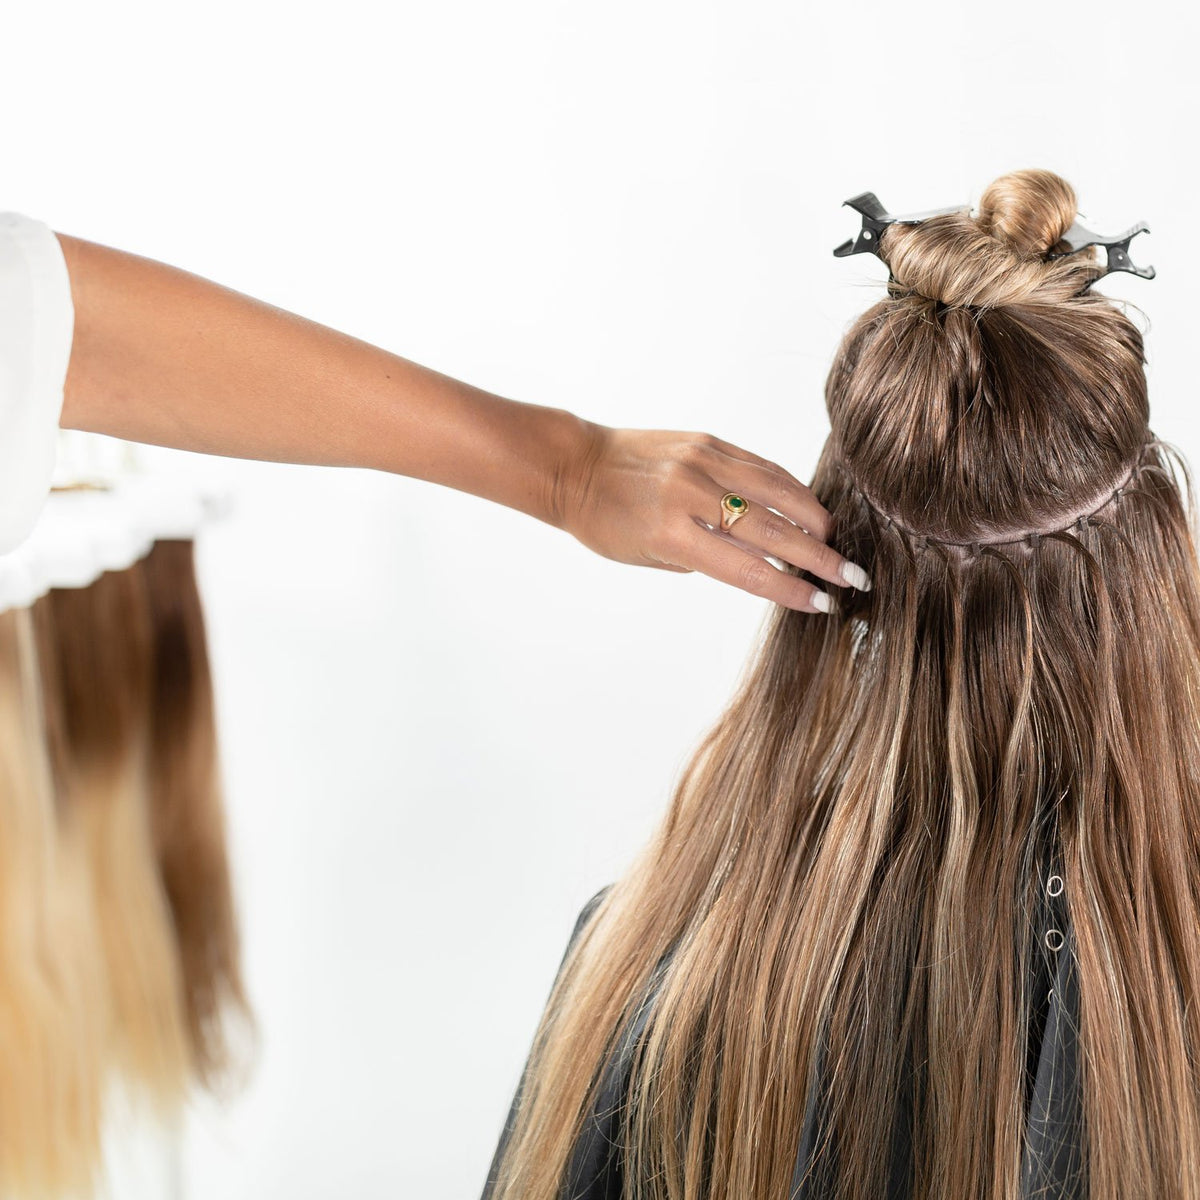 Ticket - Laced Hair Beaded Weft Extension Training Course (Salt Lake City, UT) - Beaded Weft Training Course